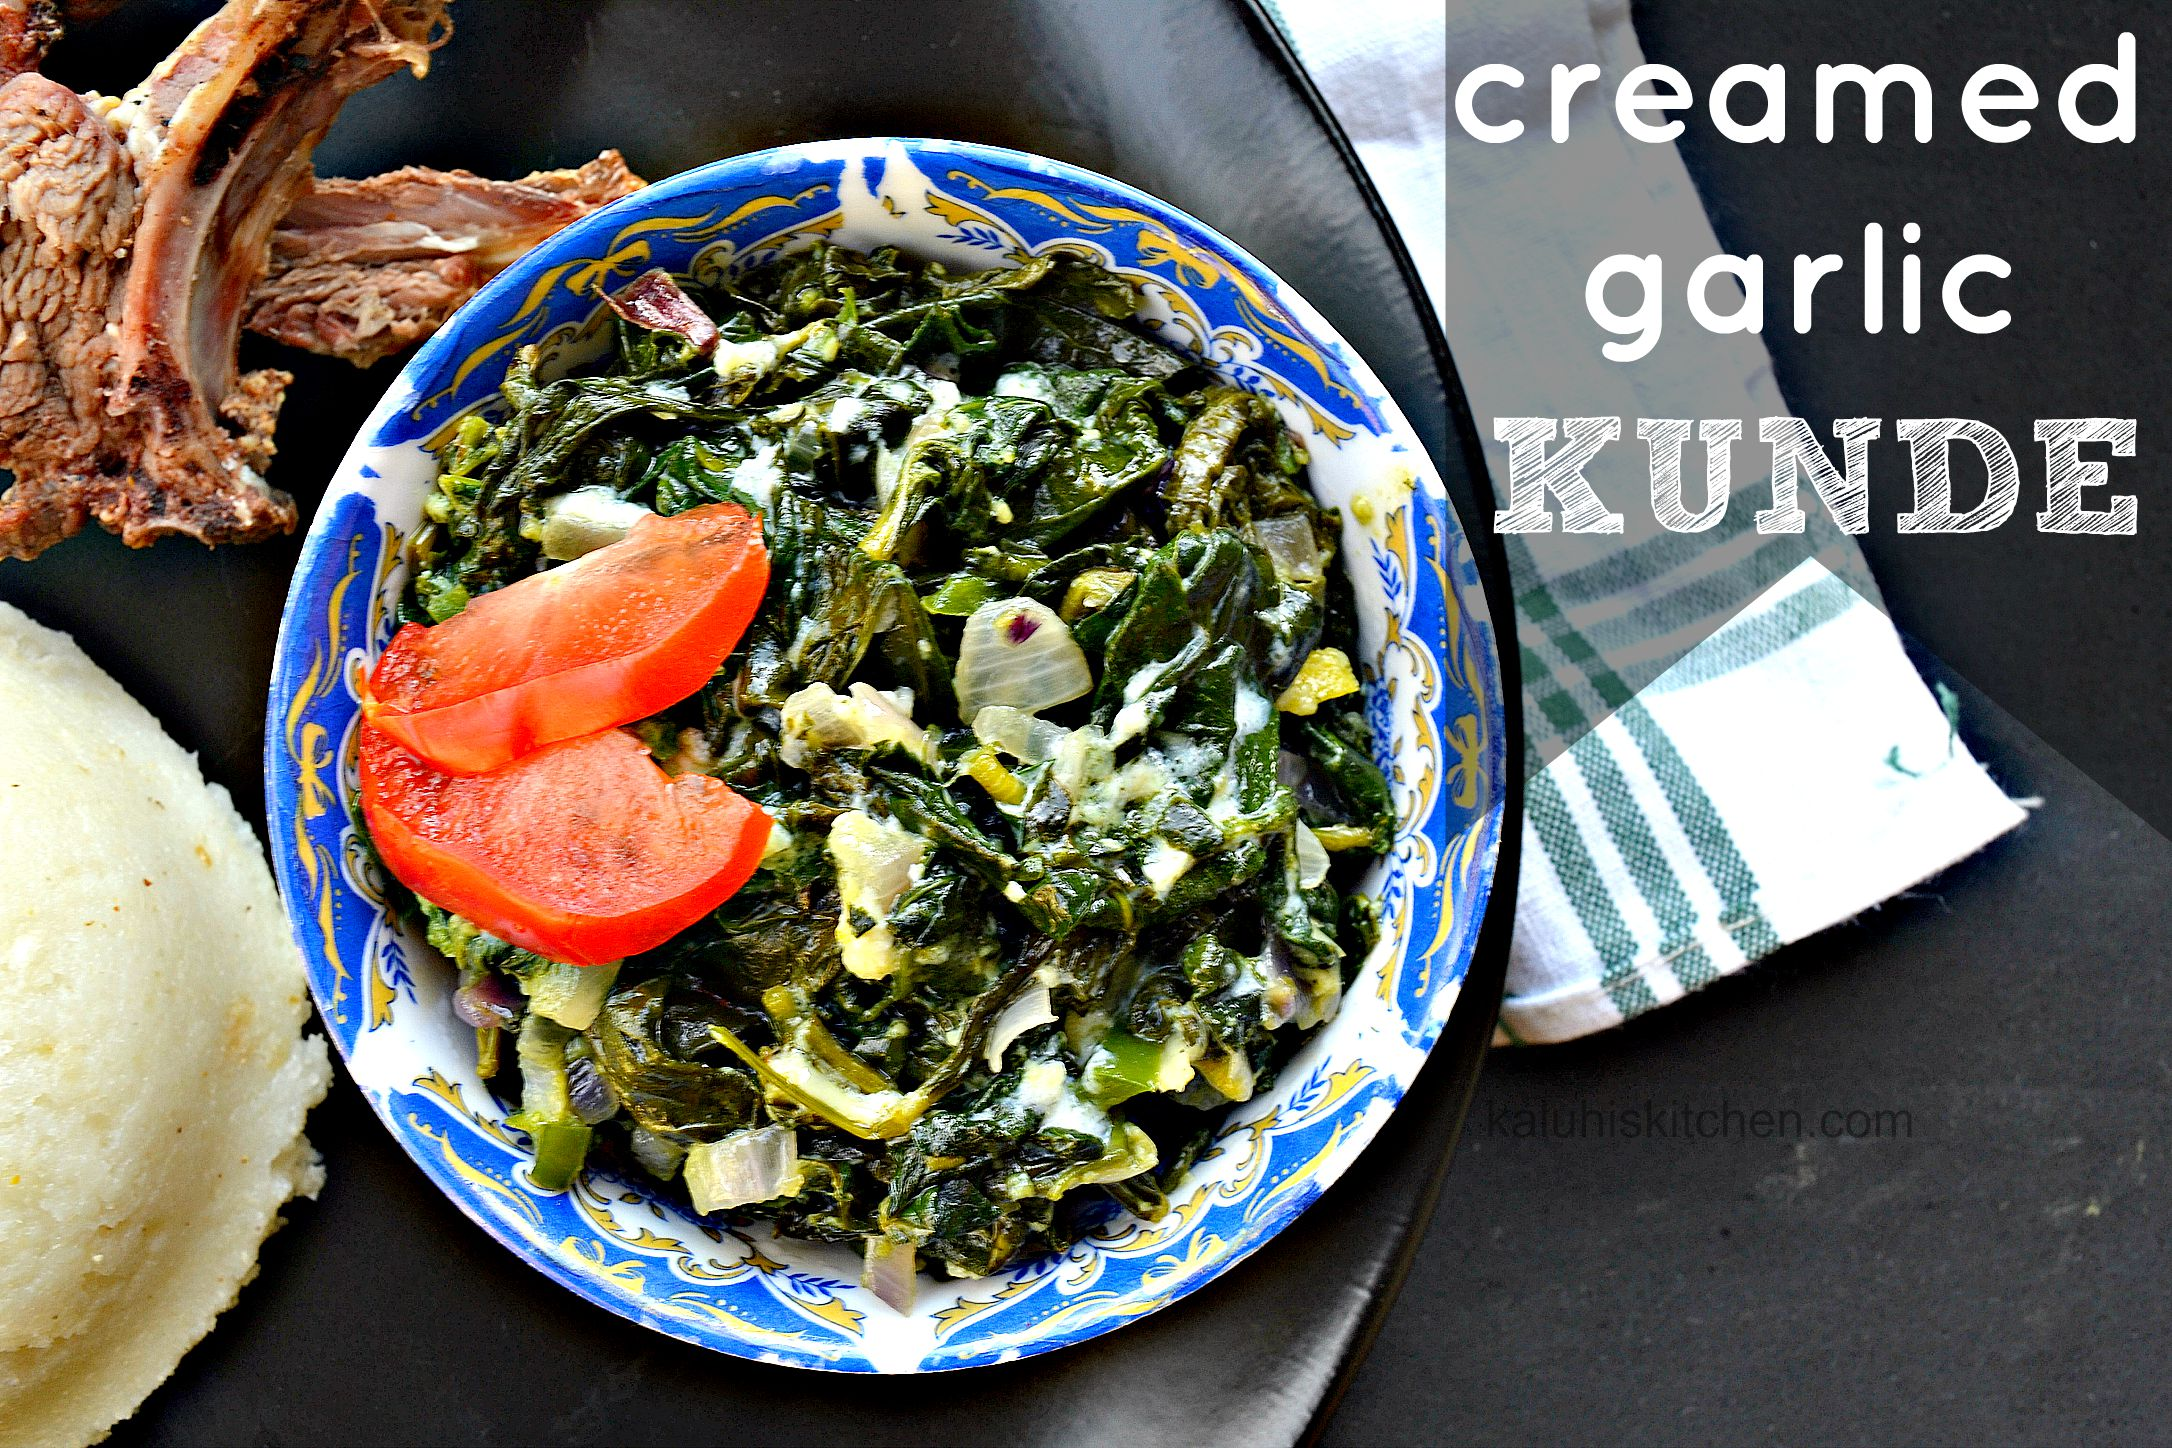 best kenyan food blog kaluhiskitchen.com presents a traditional kenyan meal called kunde made with garlic and cream for extra richness